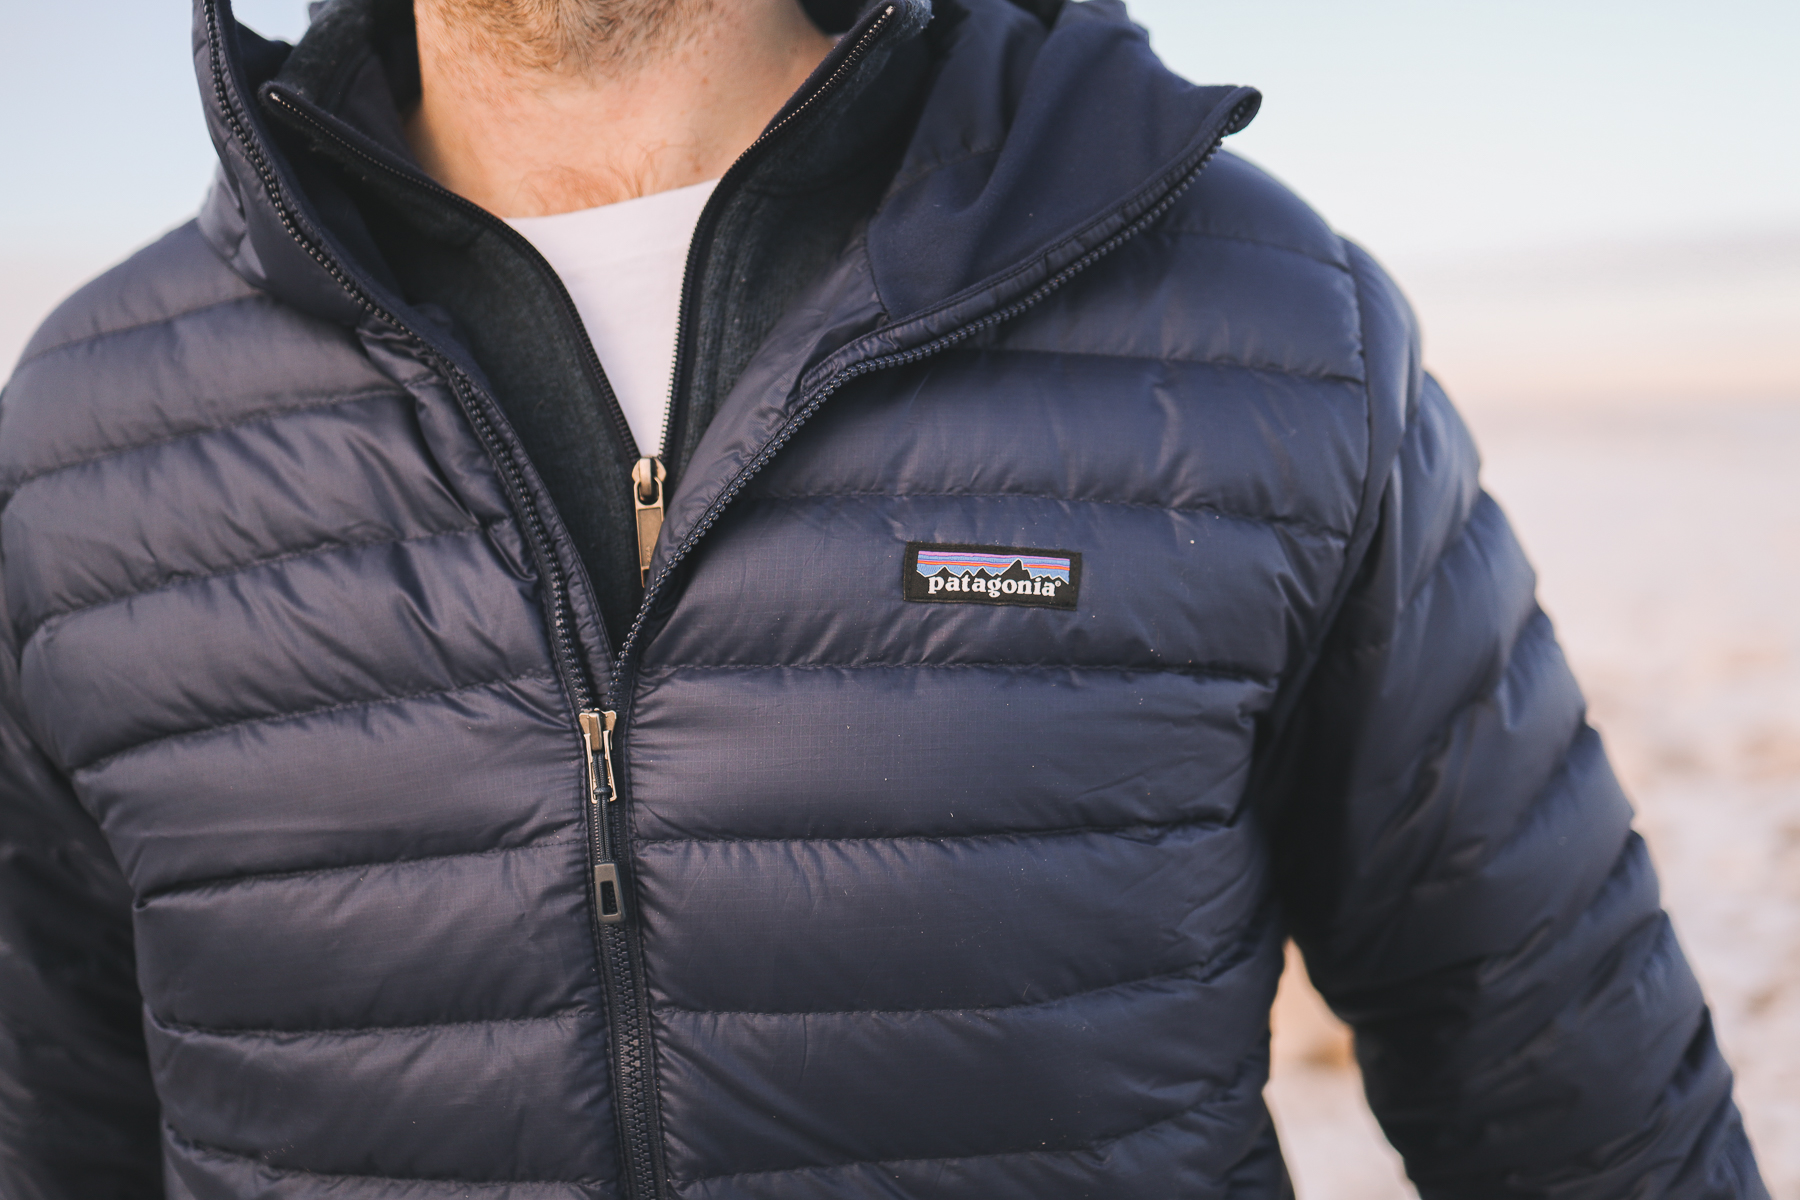 Backcountry patagonia men's winter jacket